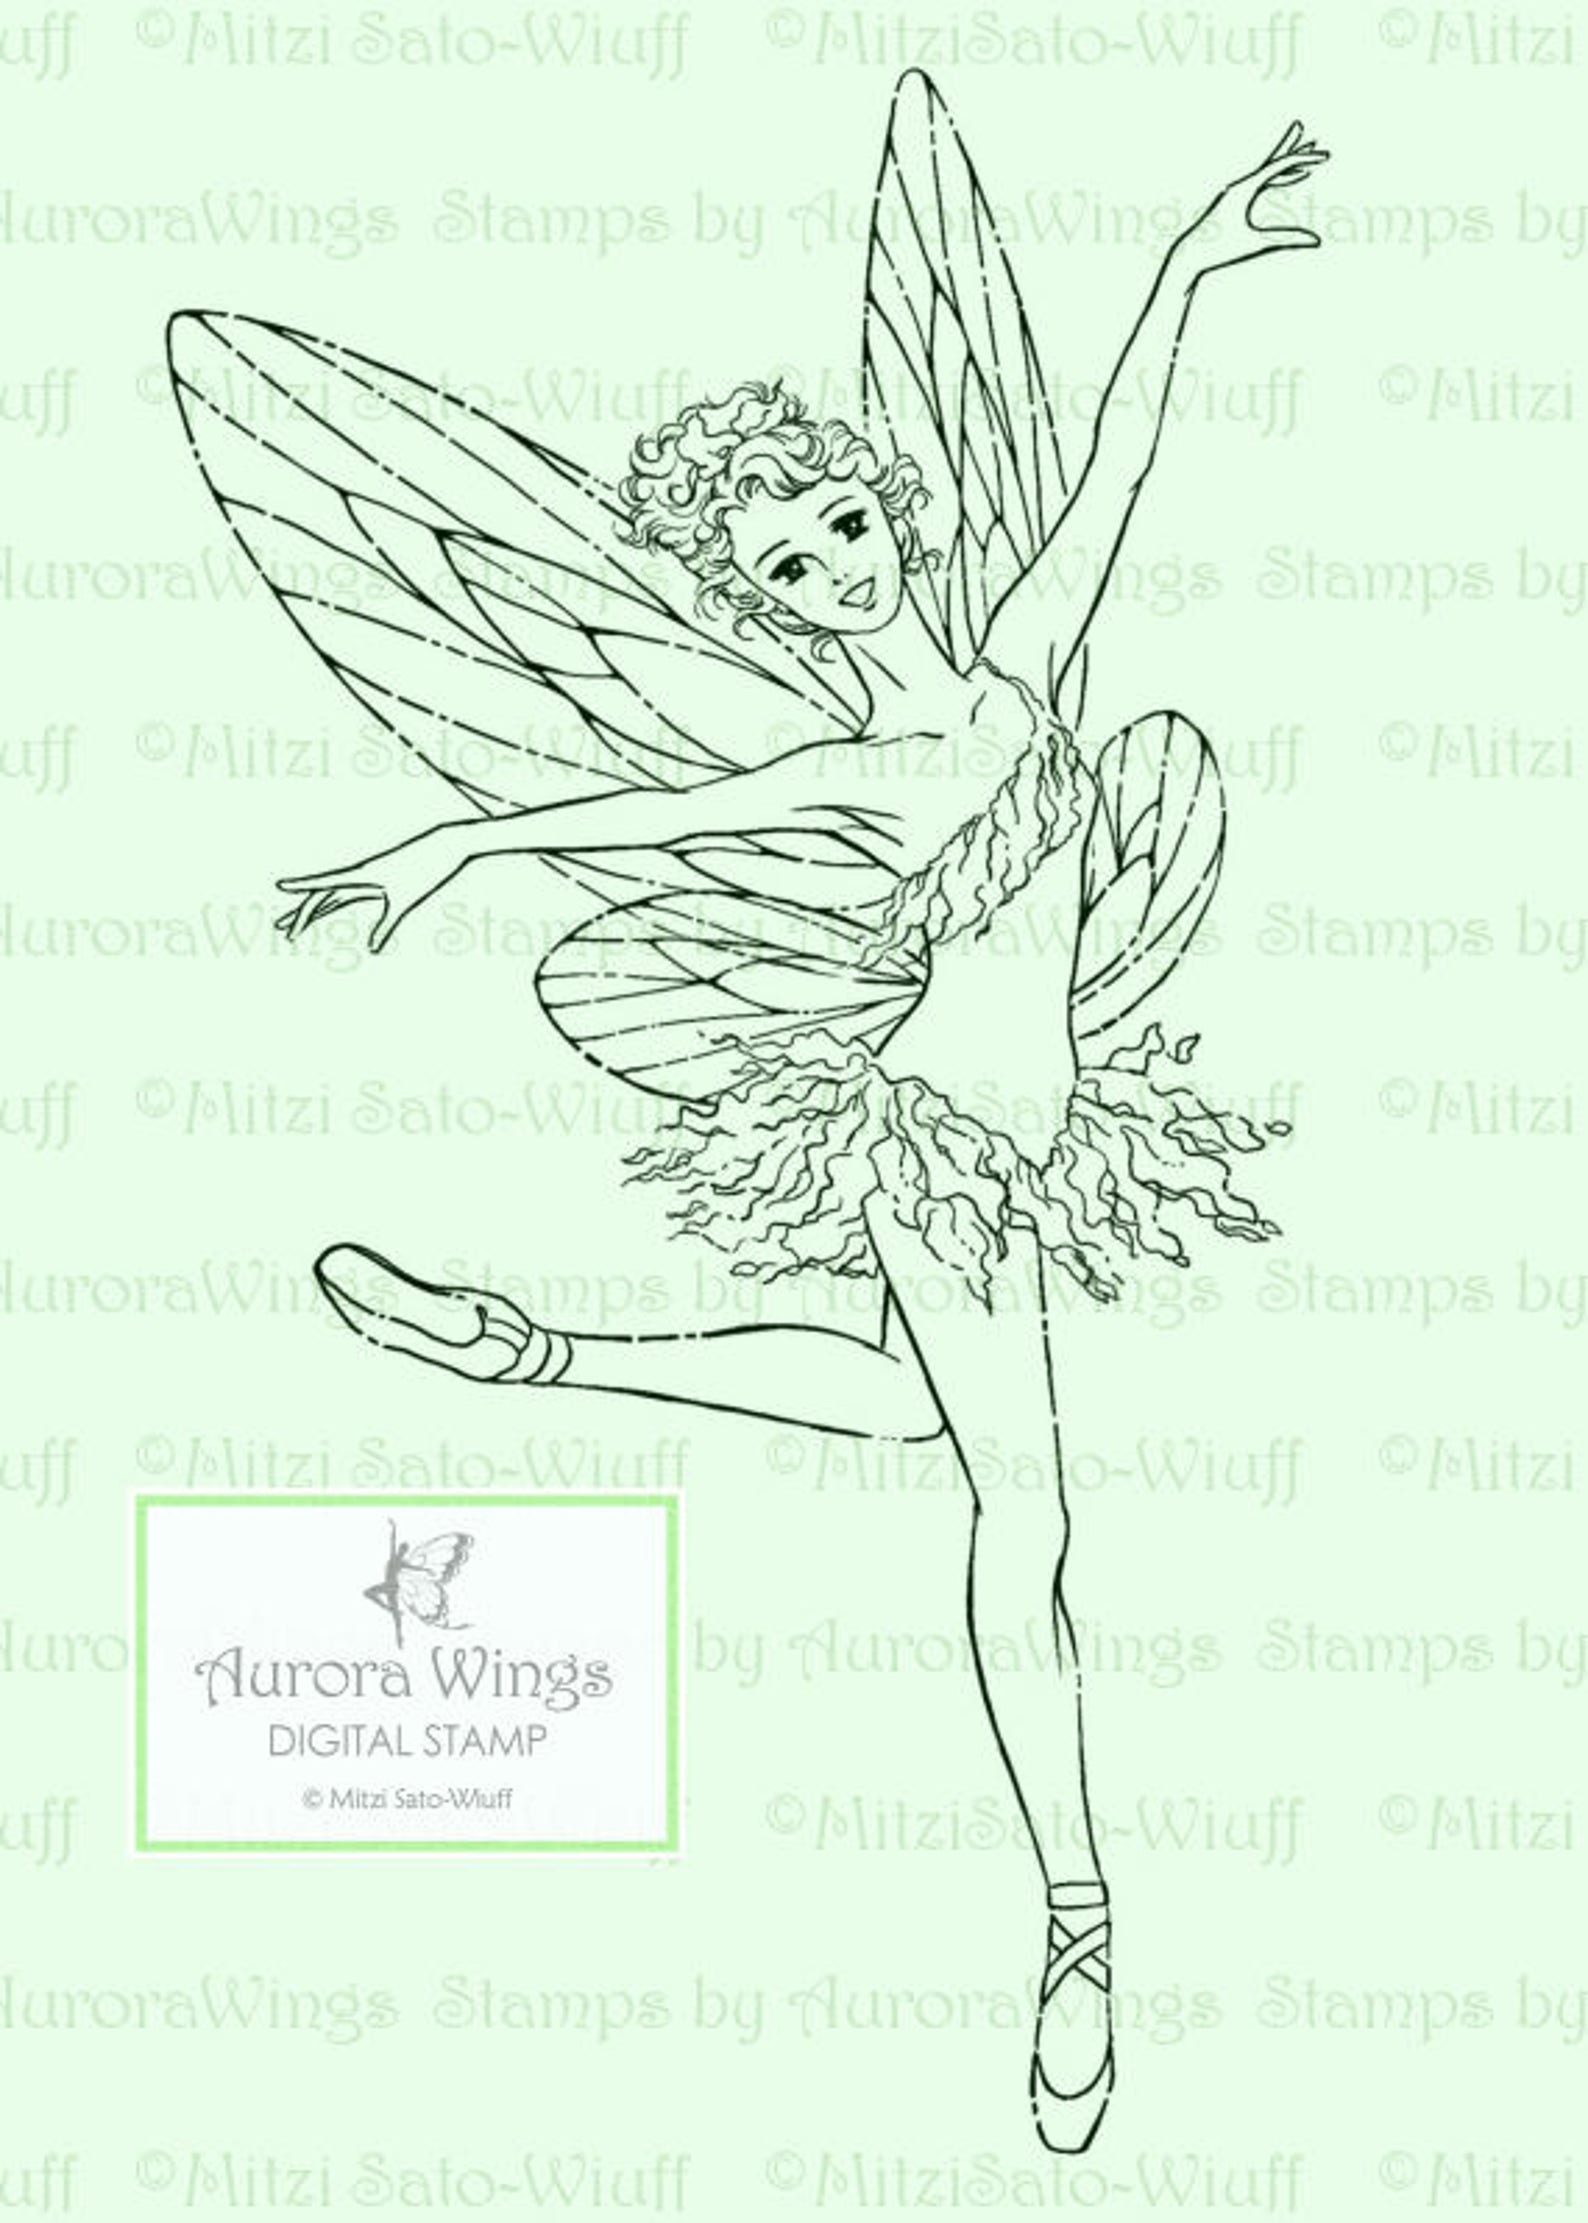 digital stamp - fairy dancer- digistamp - ballet fairy in pointe shoes - fantasy line art for cards & crafts by mitzi sato-wiuff